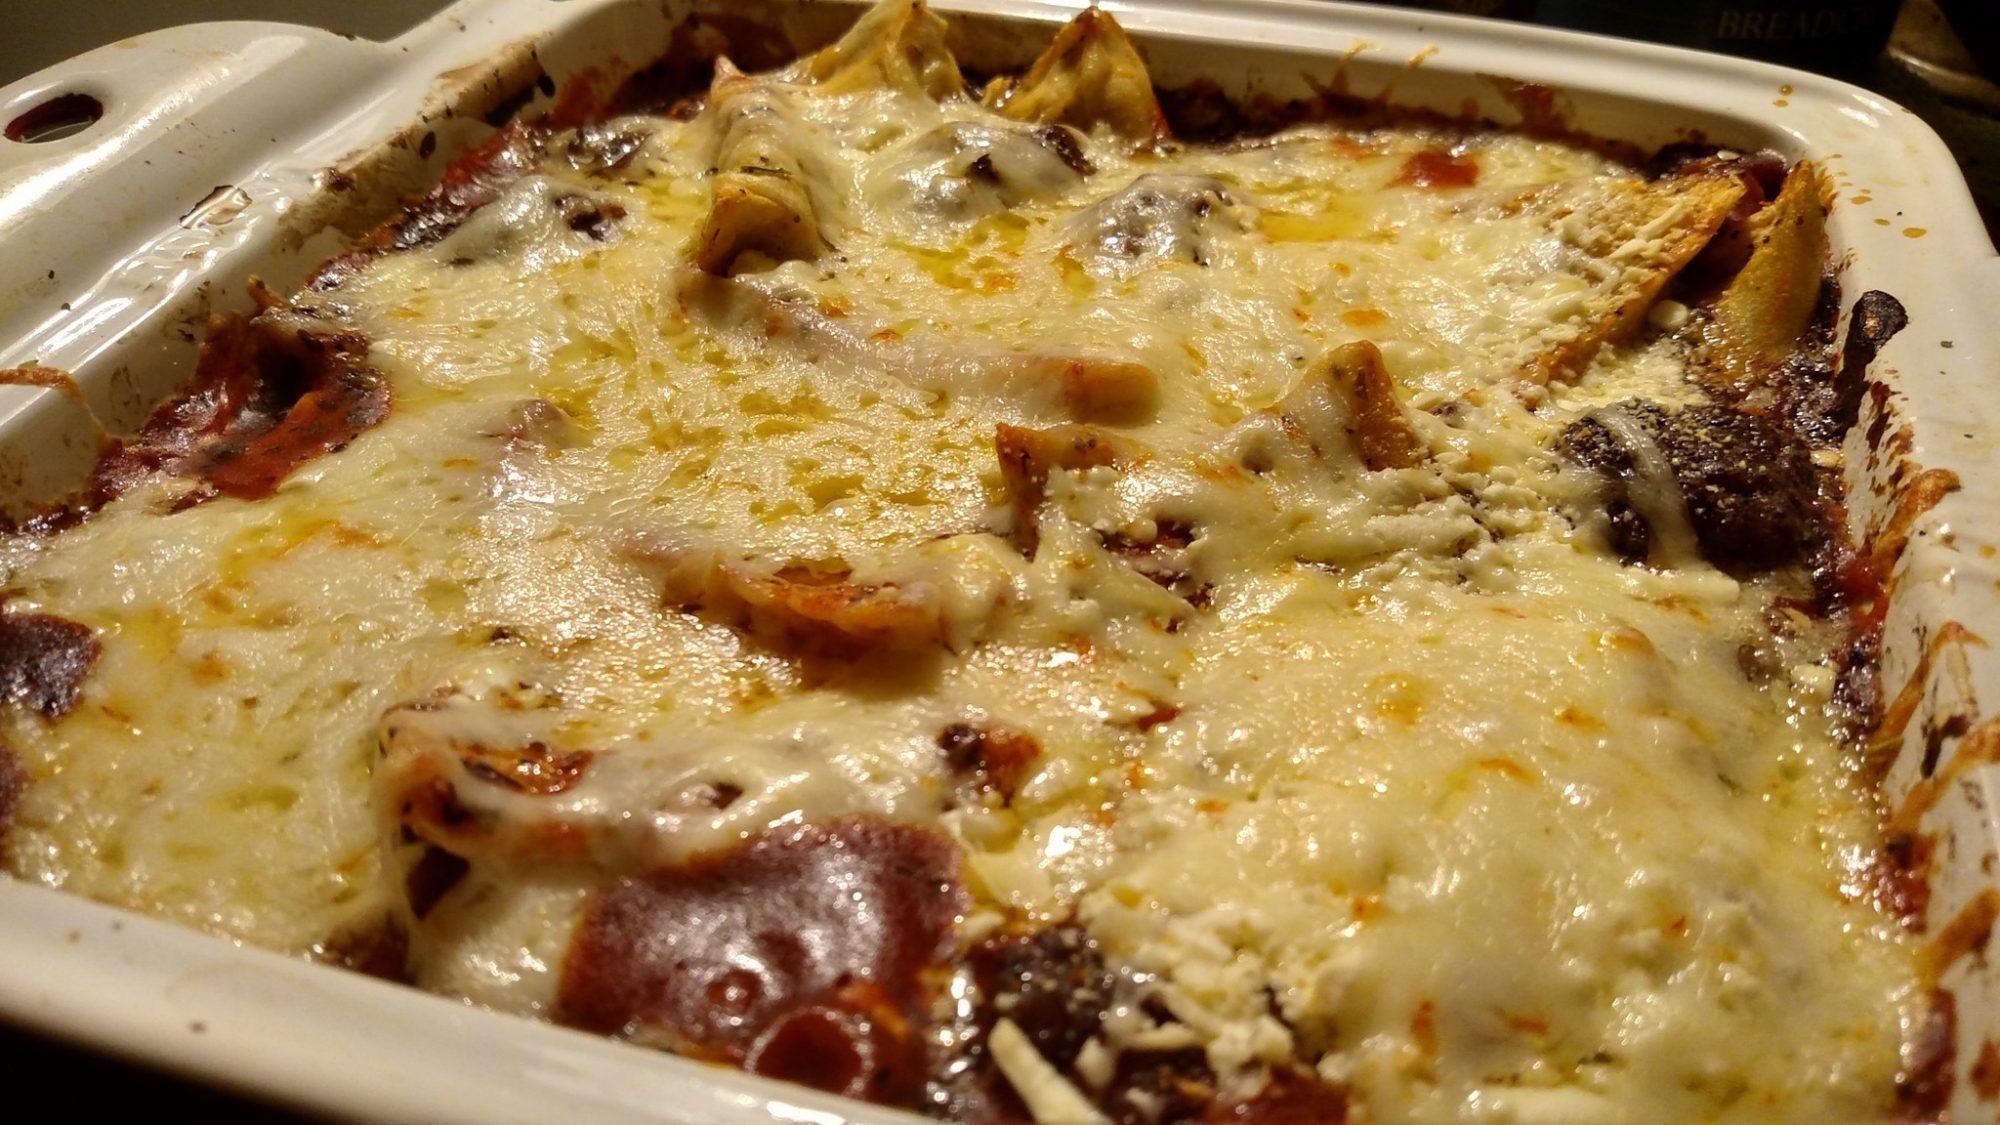 easy bake ravioli in baking dish hot from oven